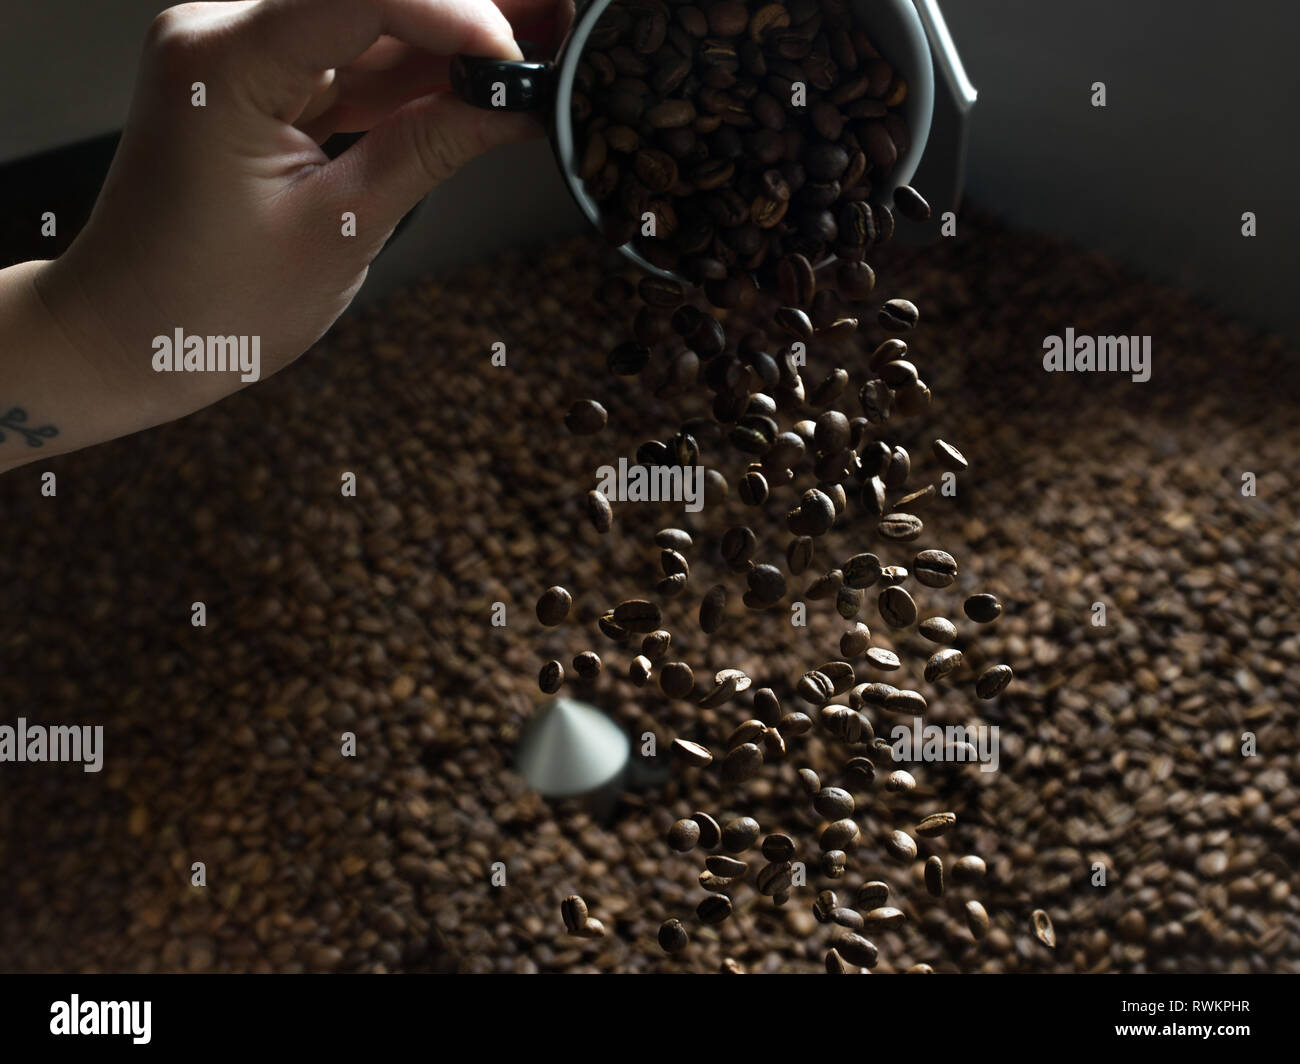 Hand pouring coffee beans into coffee roaster Stock Photo